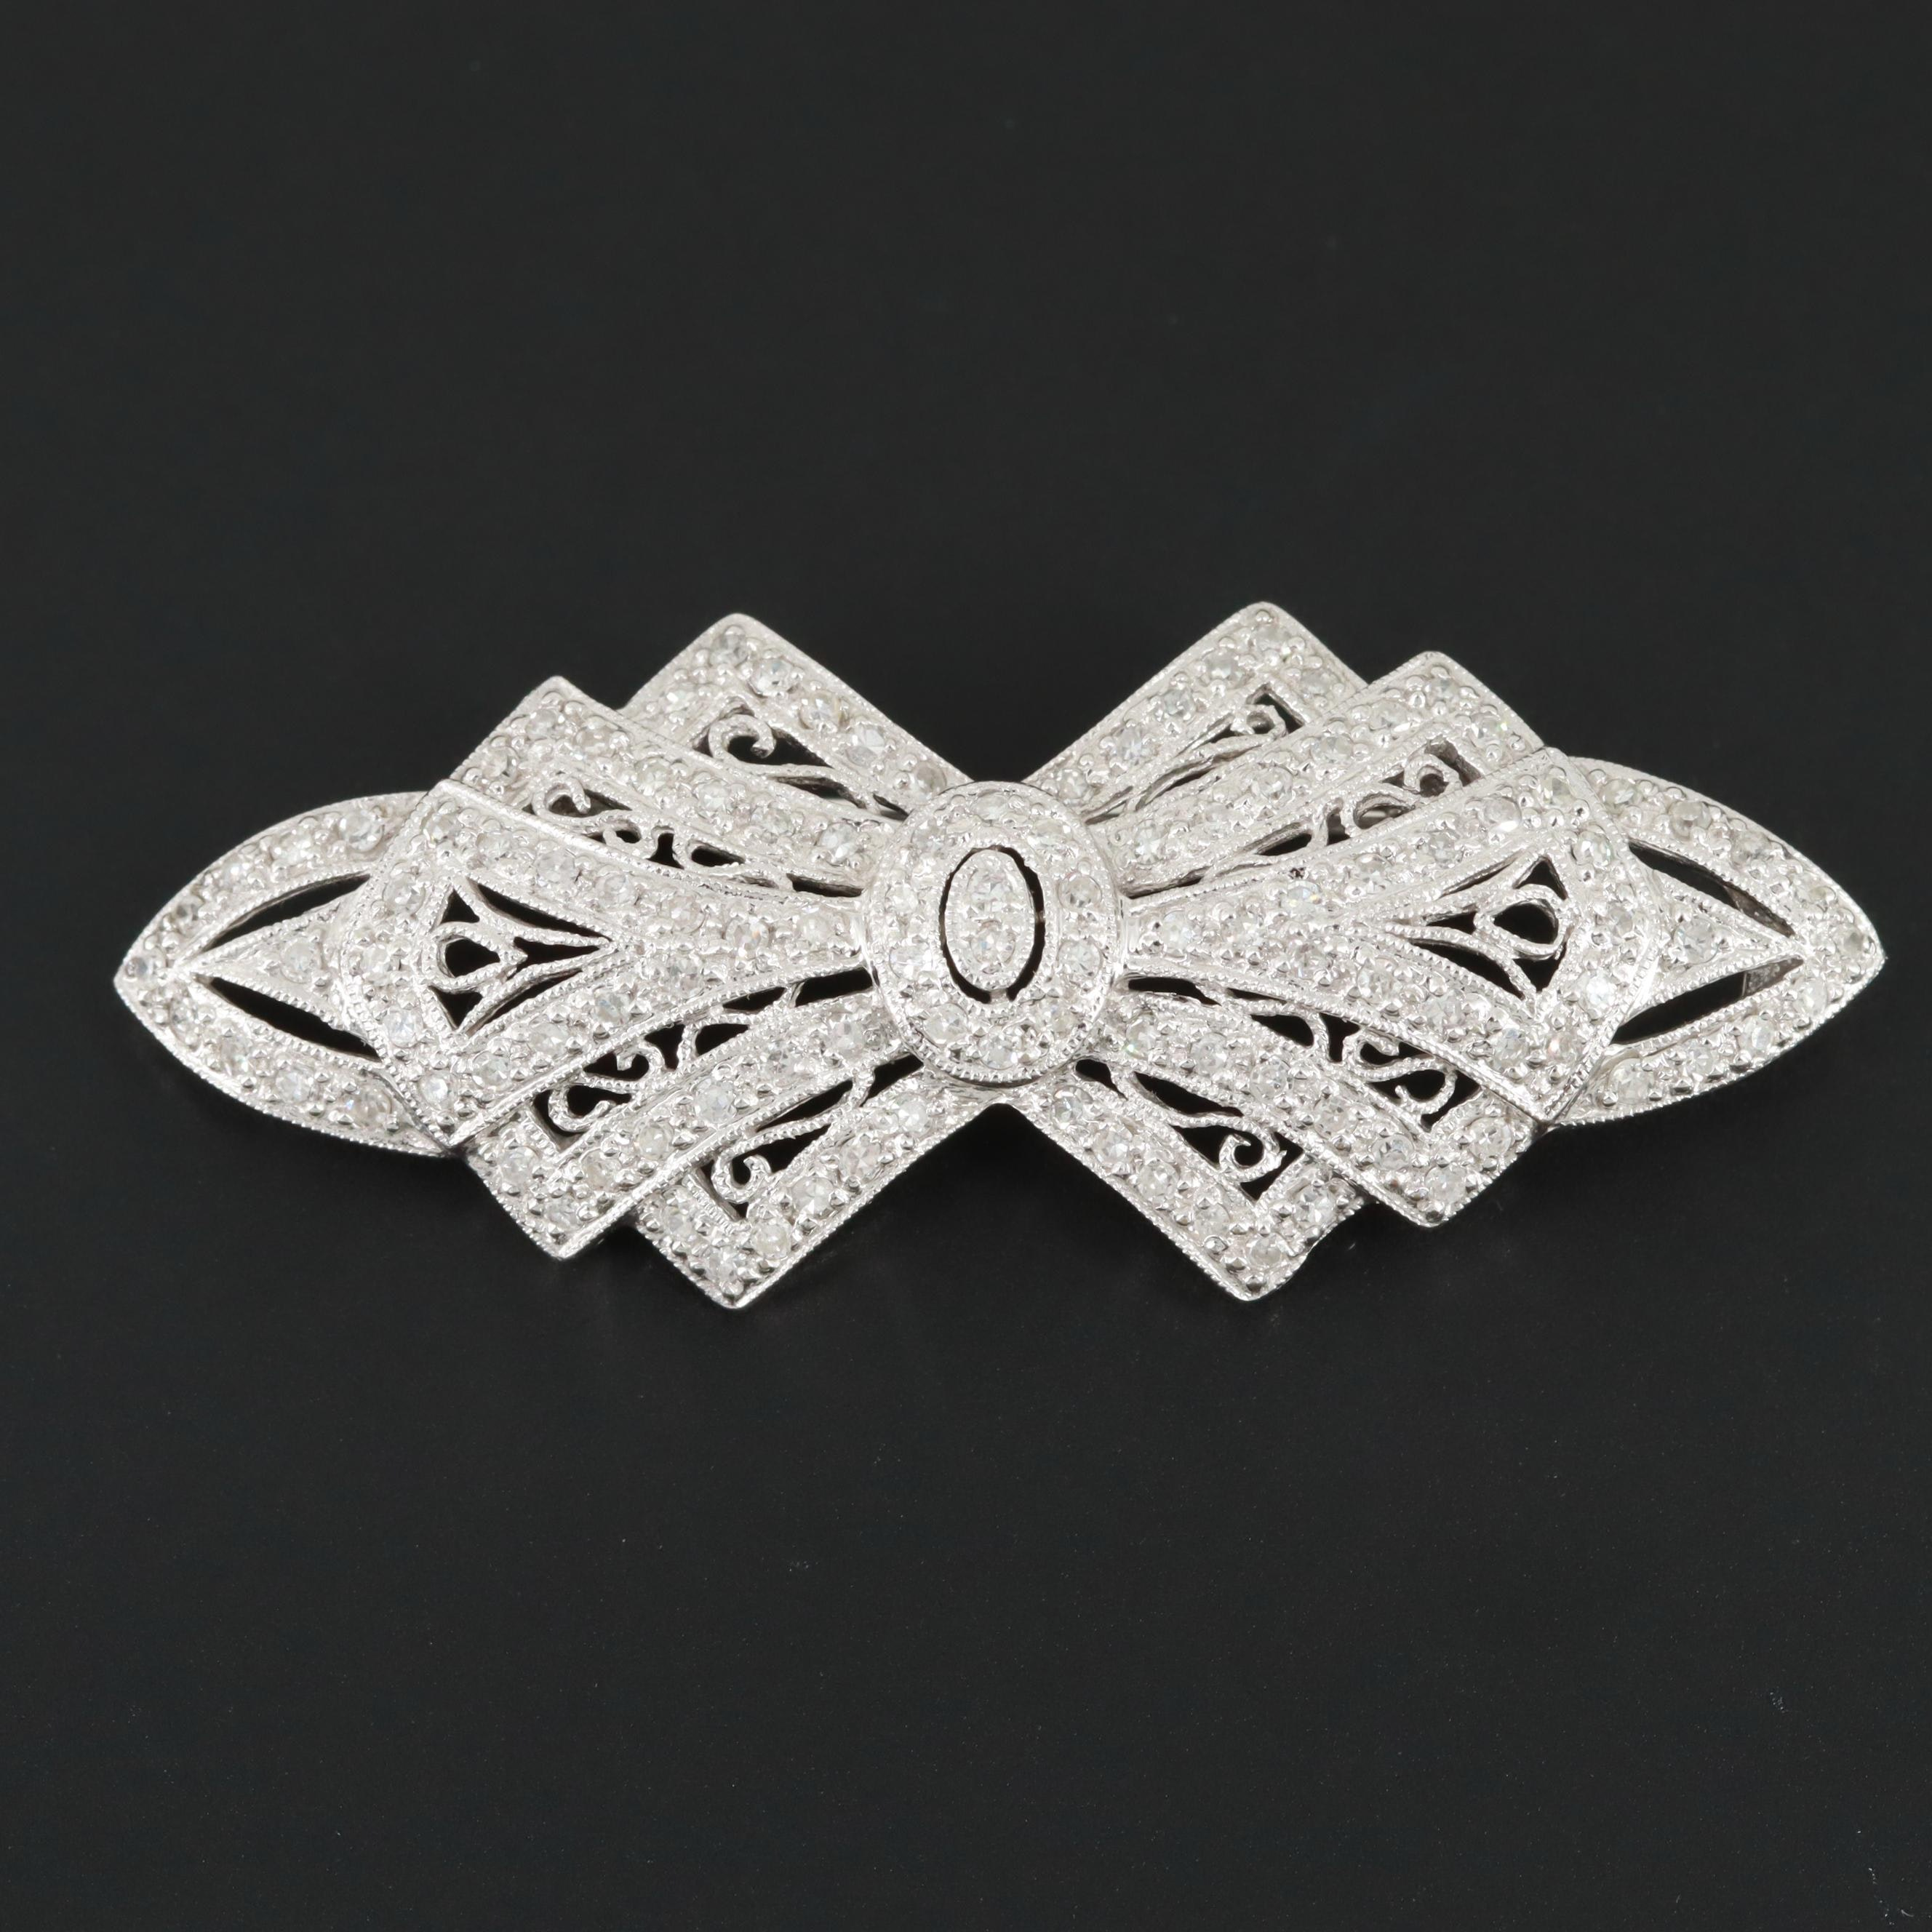 Art Deco Style 14K White Gold Diamond Brooch